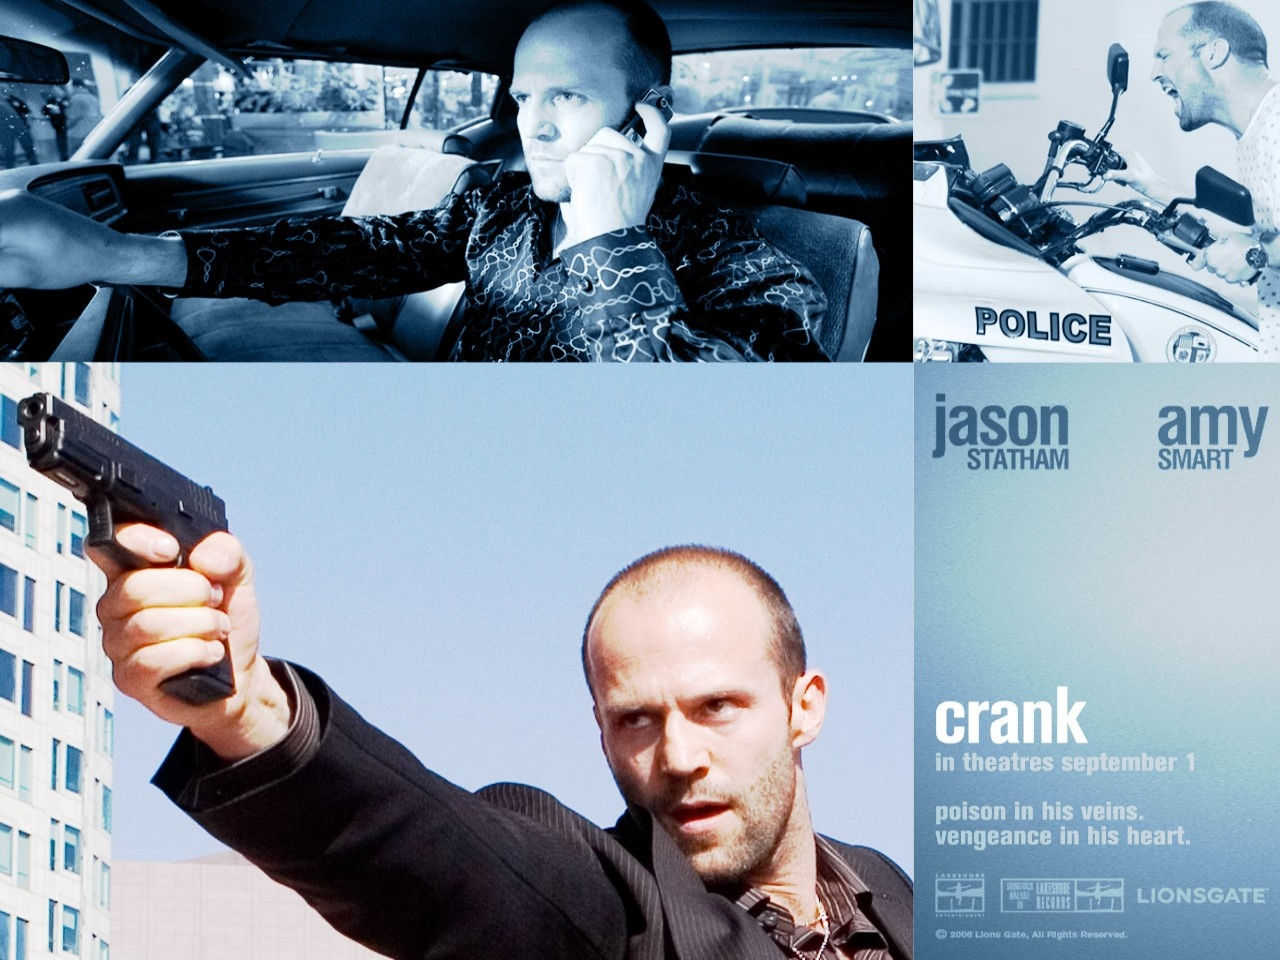 Wallpaper del film Crank